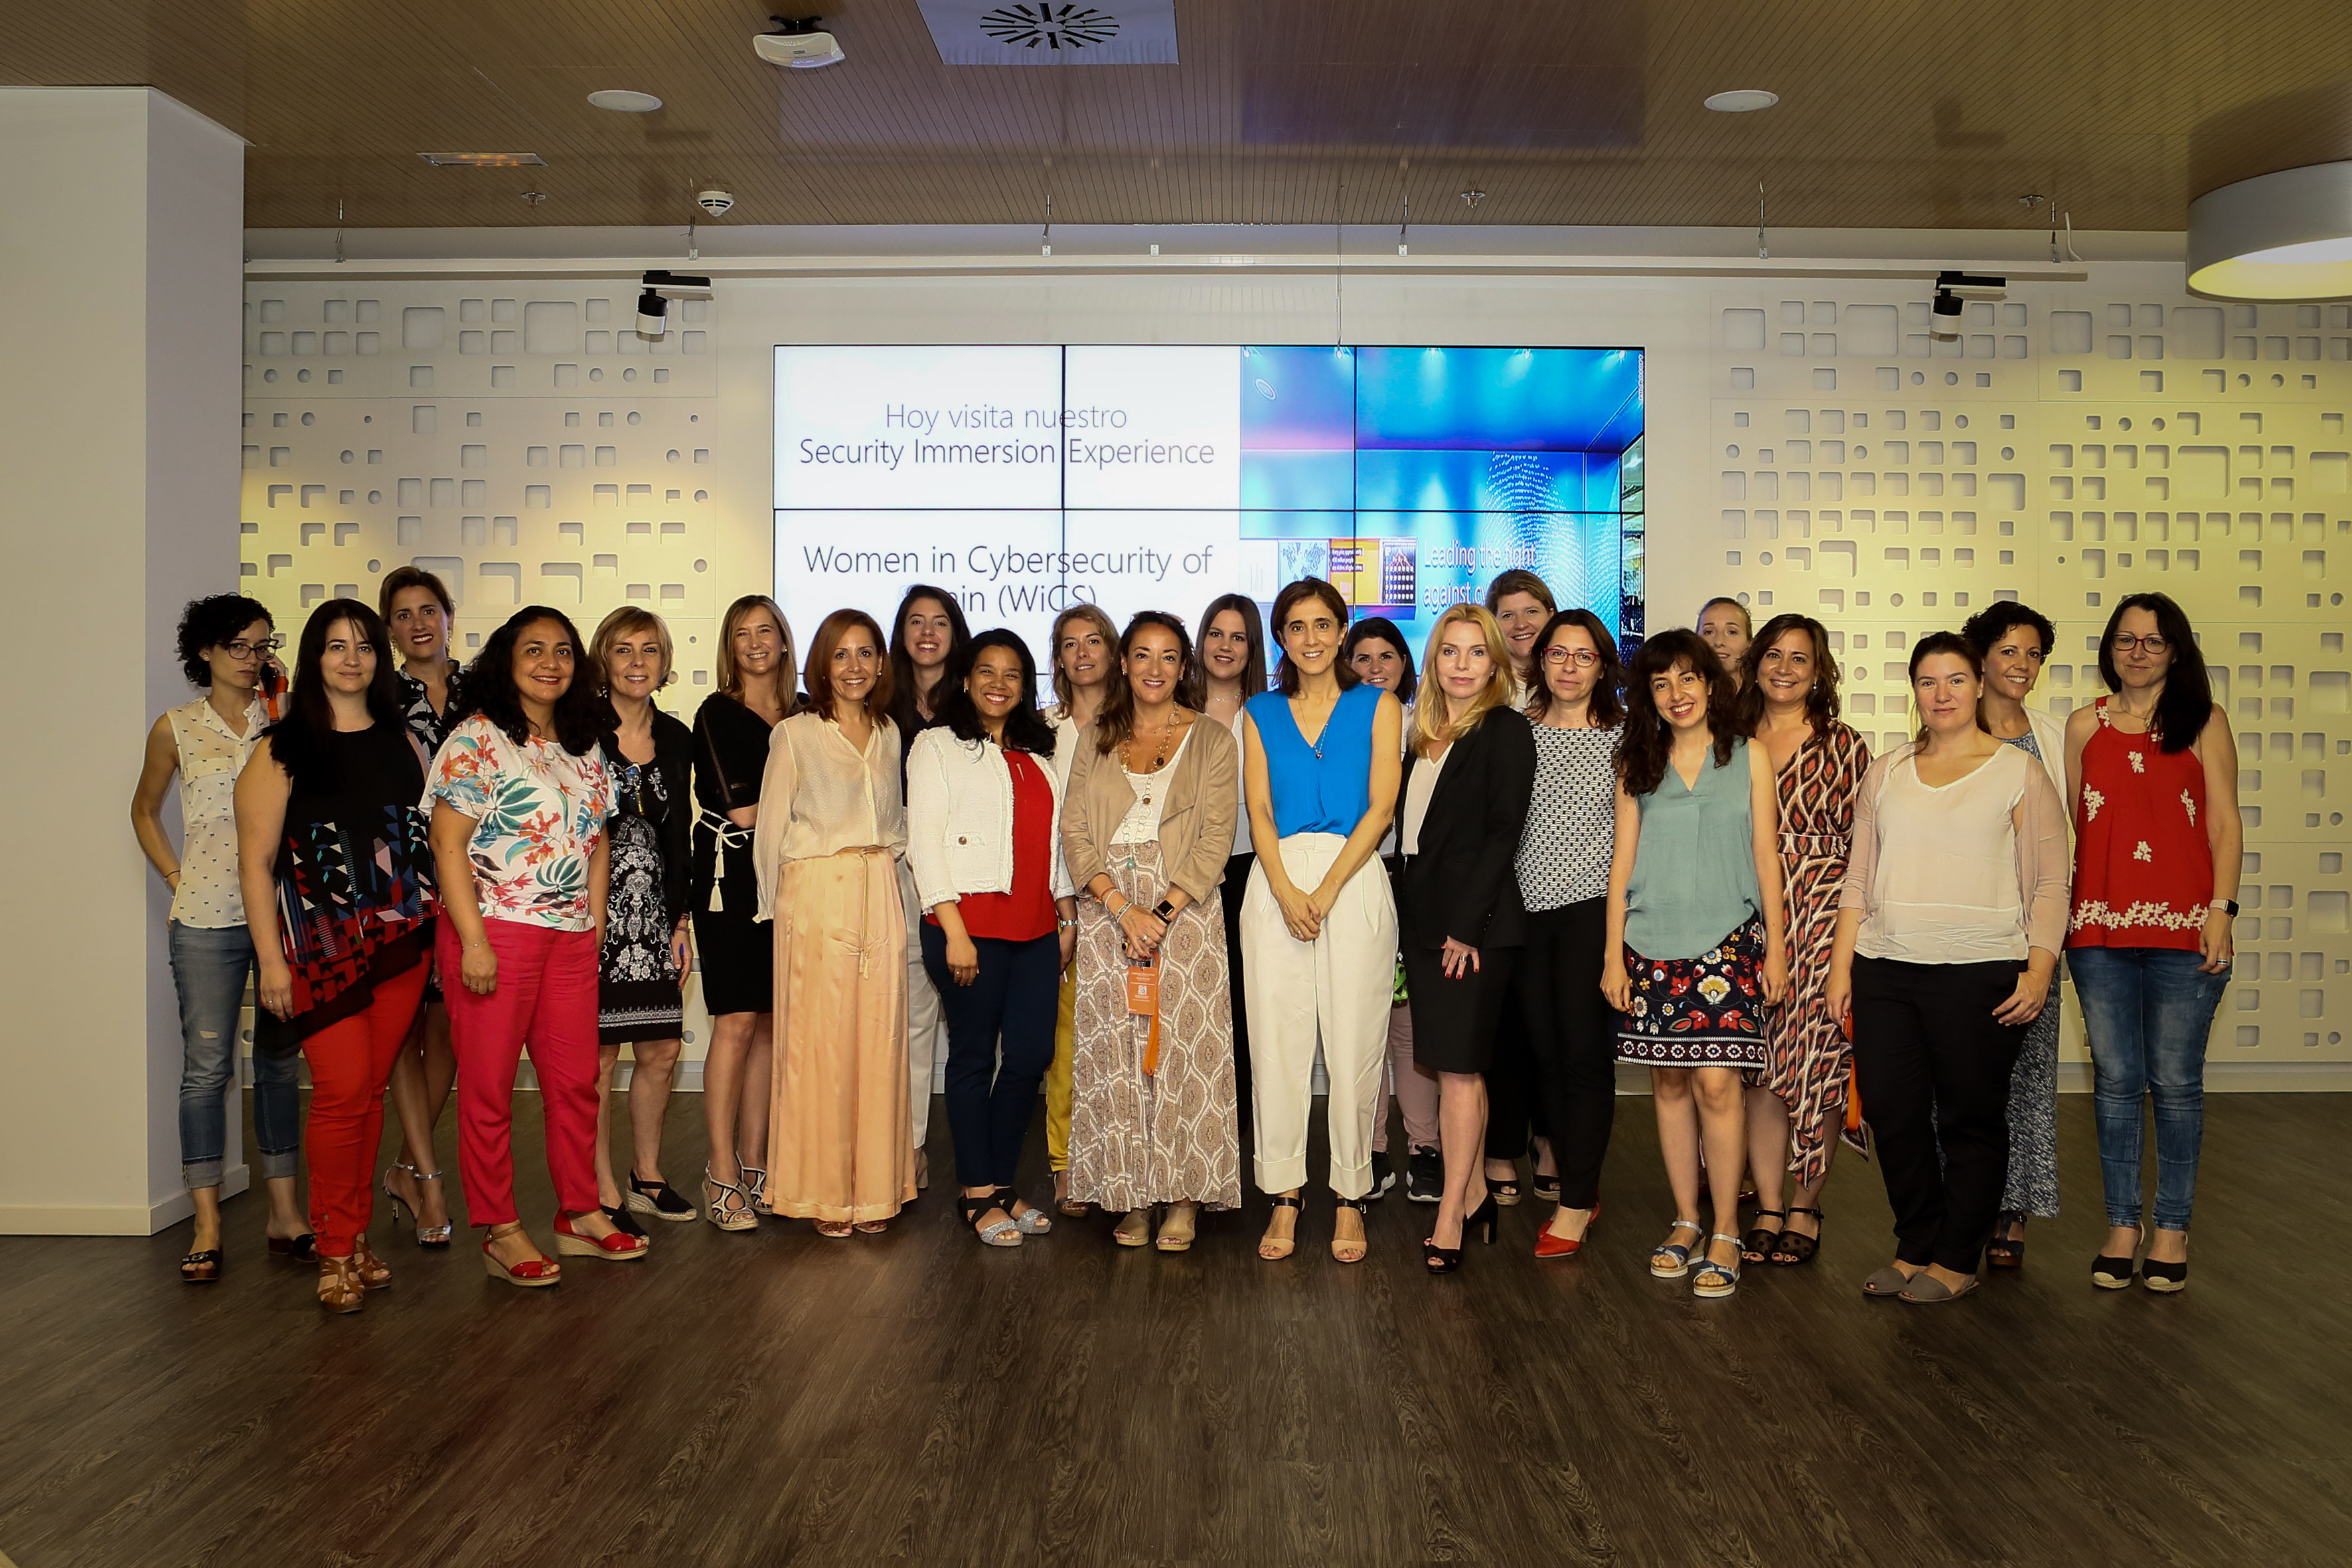 Women in Cibersecurity of Spain (3) - Foto de familia